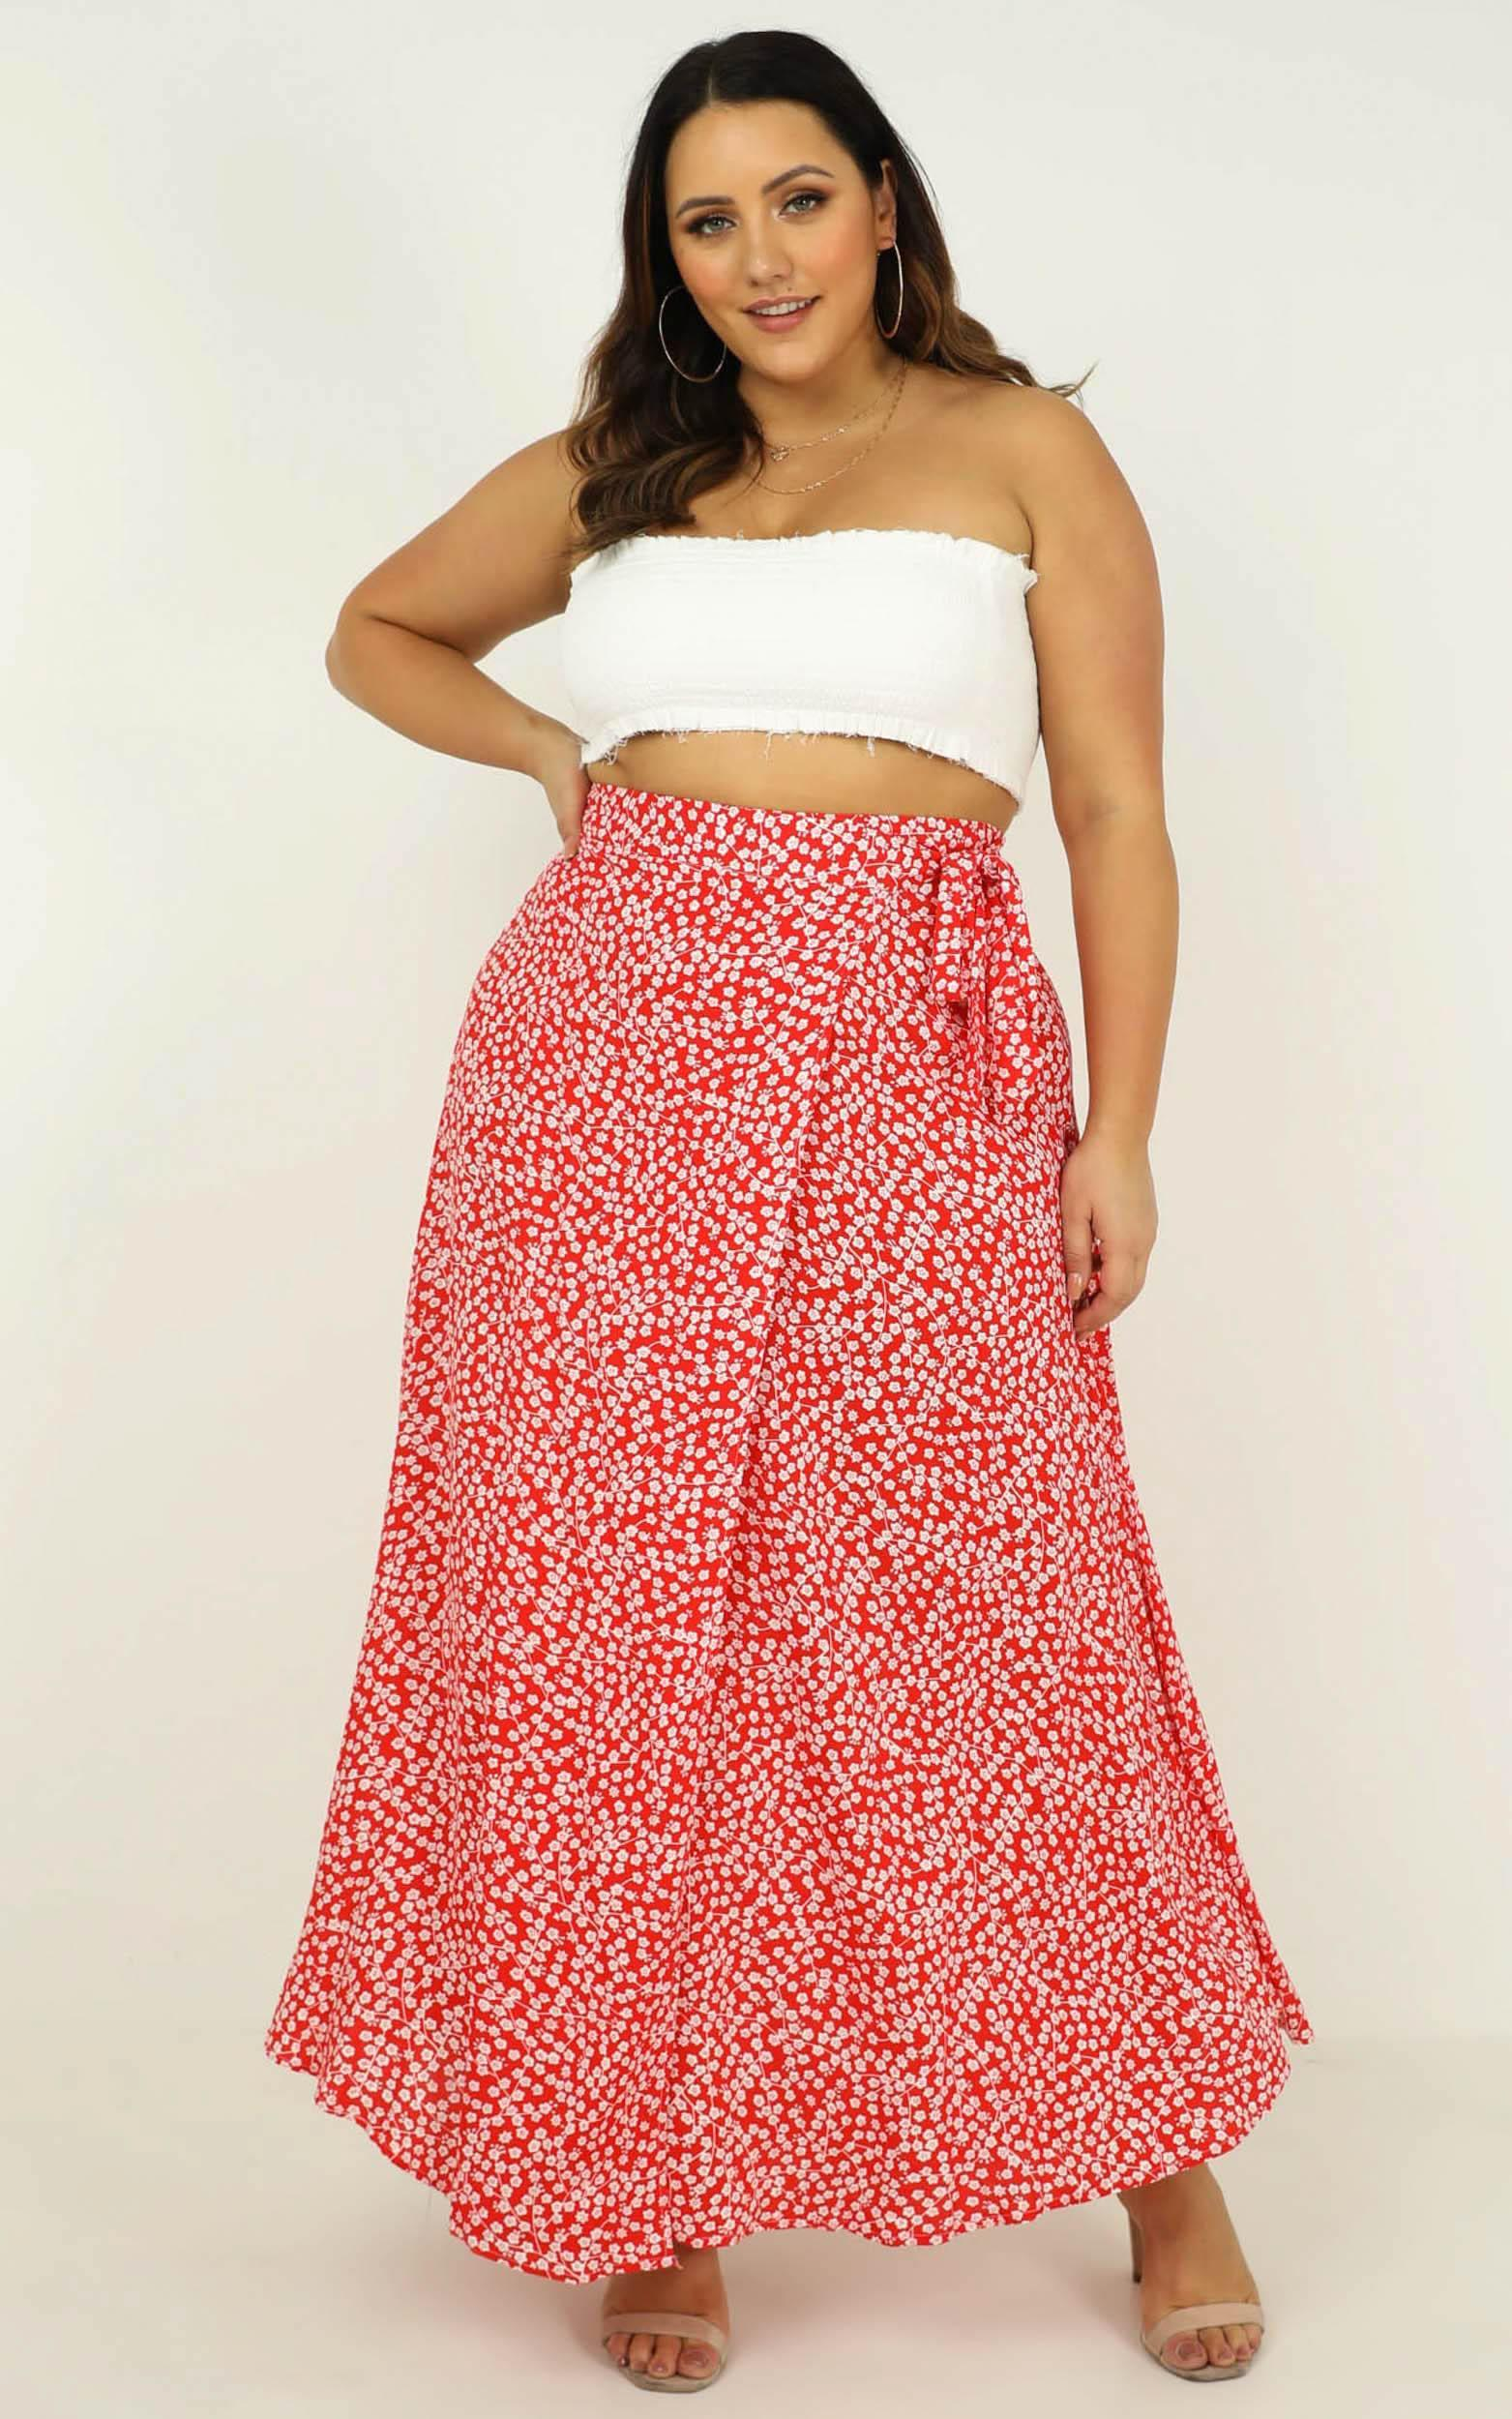 Break A Leg maxi skirt in red floral - 20 (XXXXL), Red, hi-res image number null